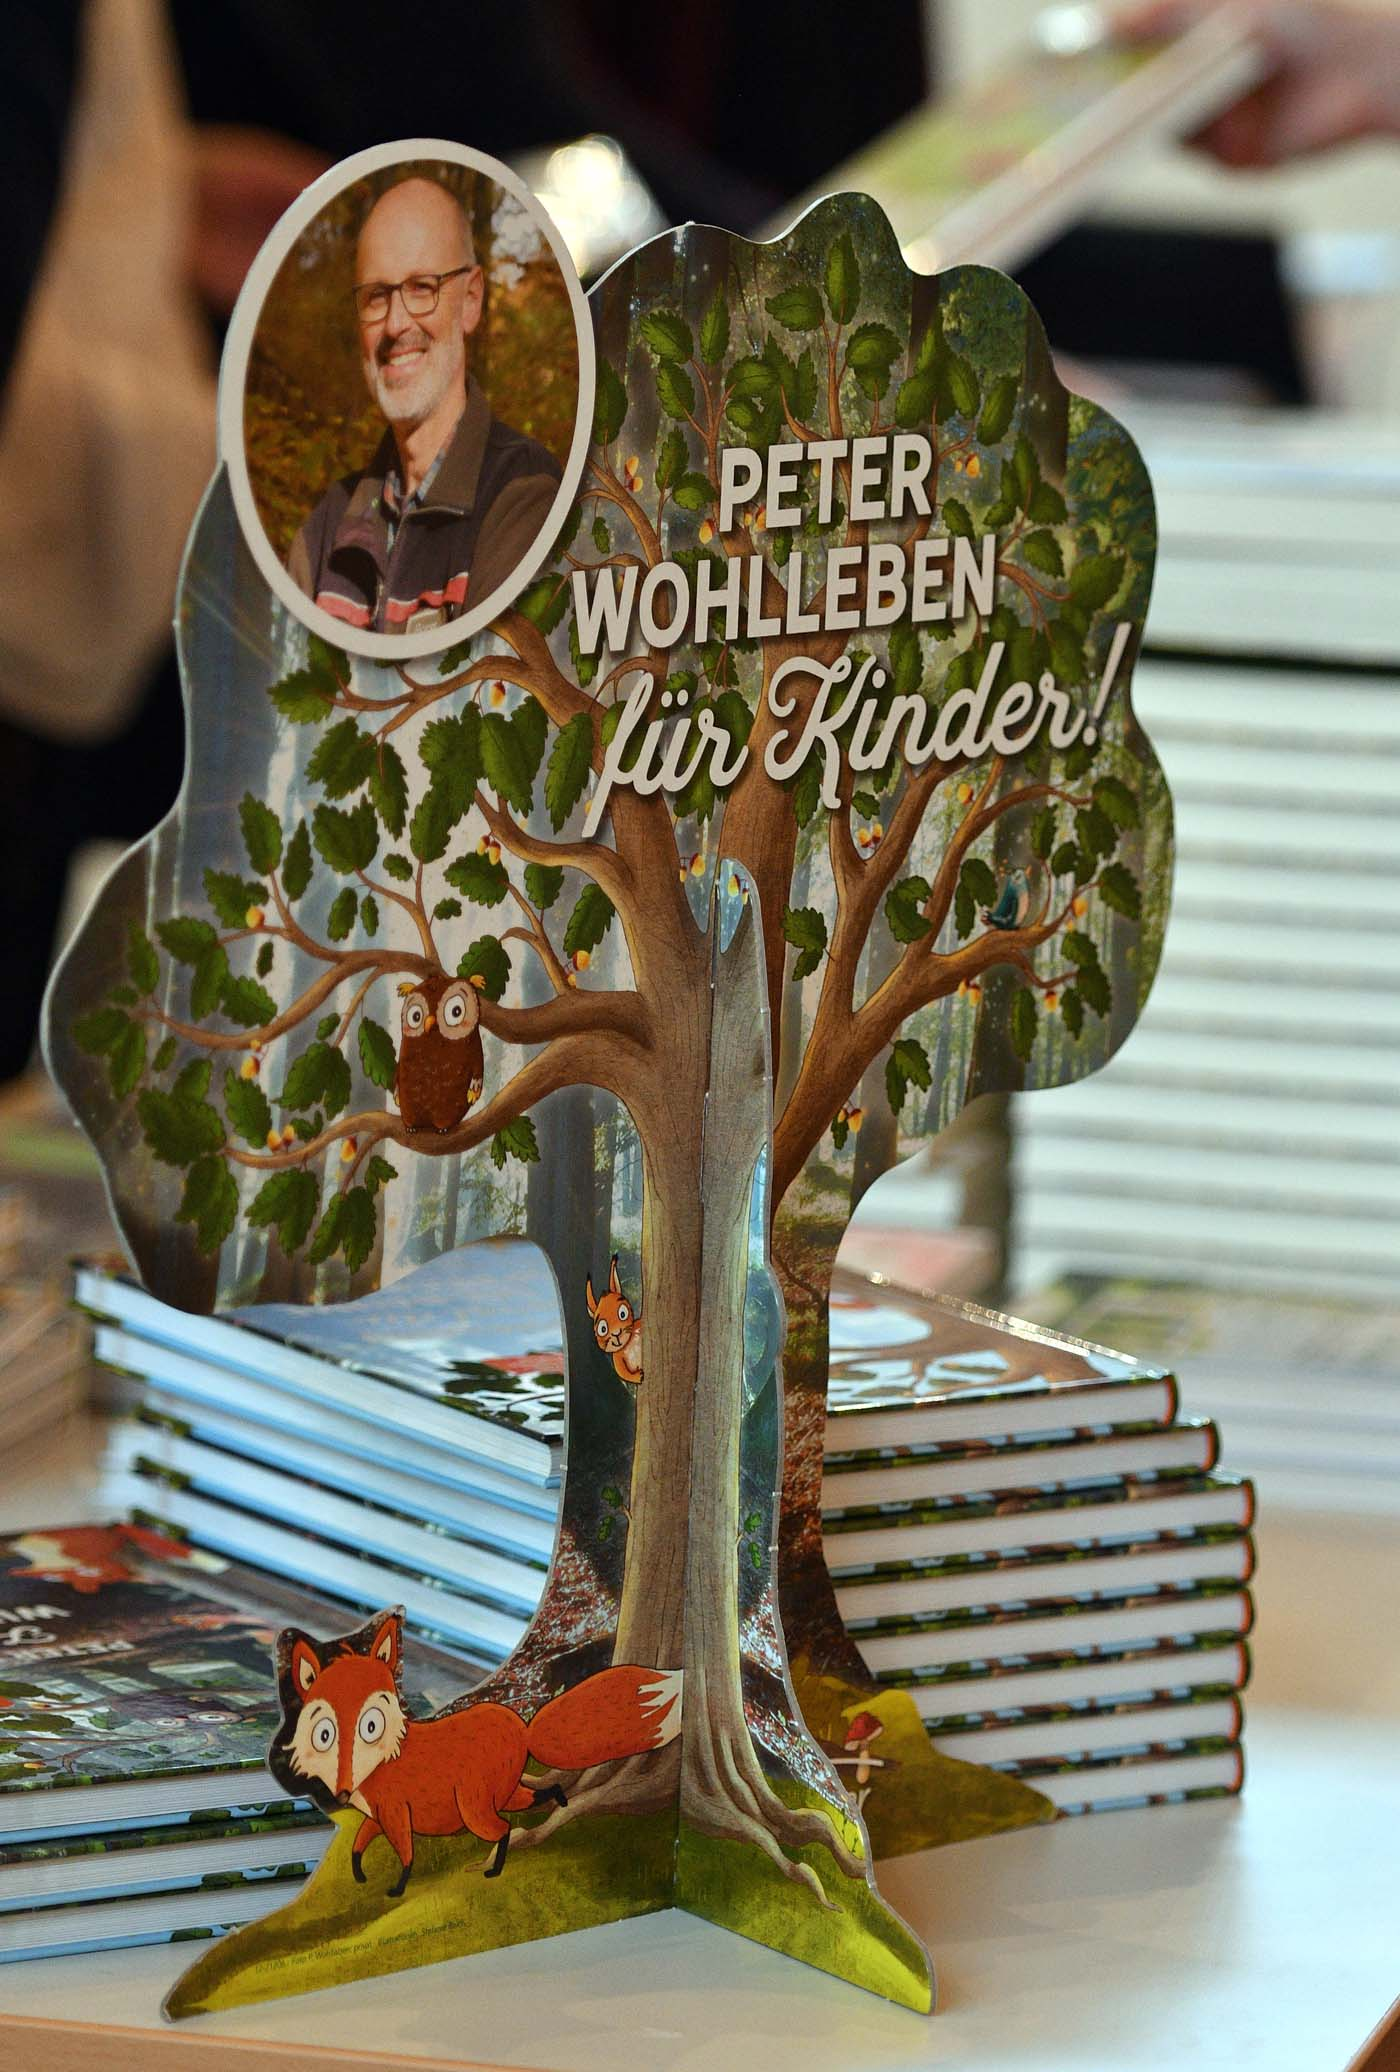 Peter Wohlleben am 13. April 2018 in Prüm